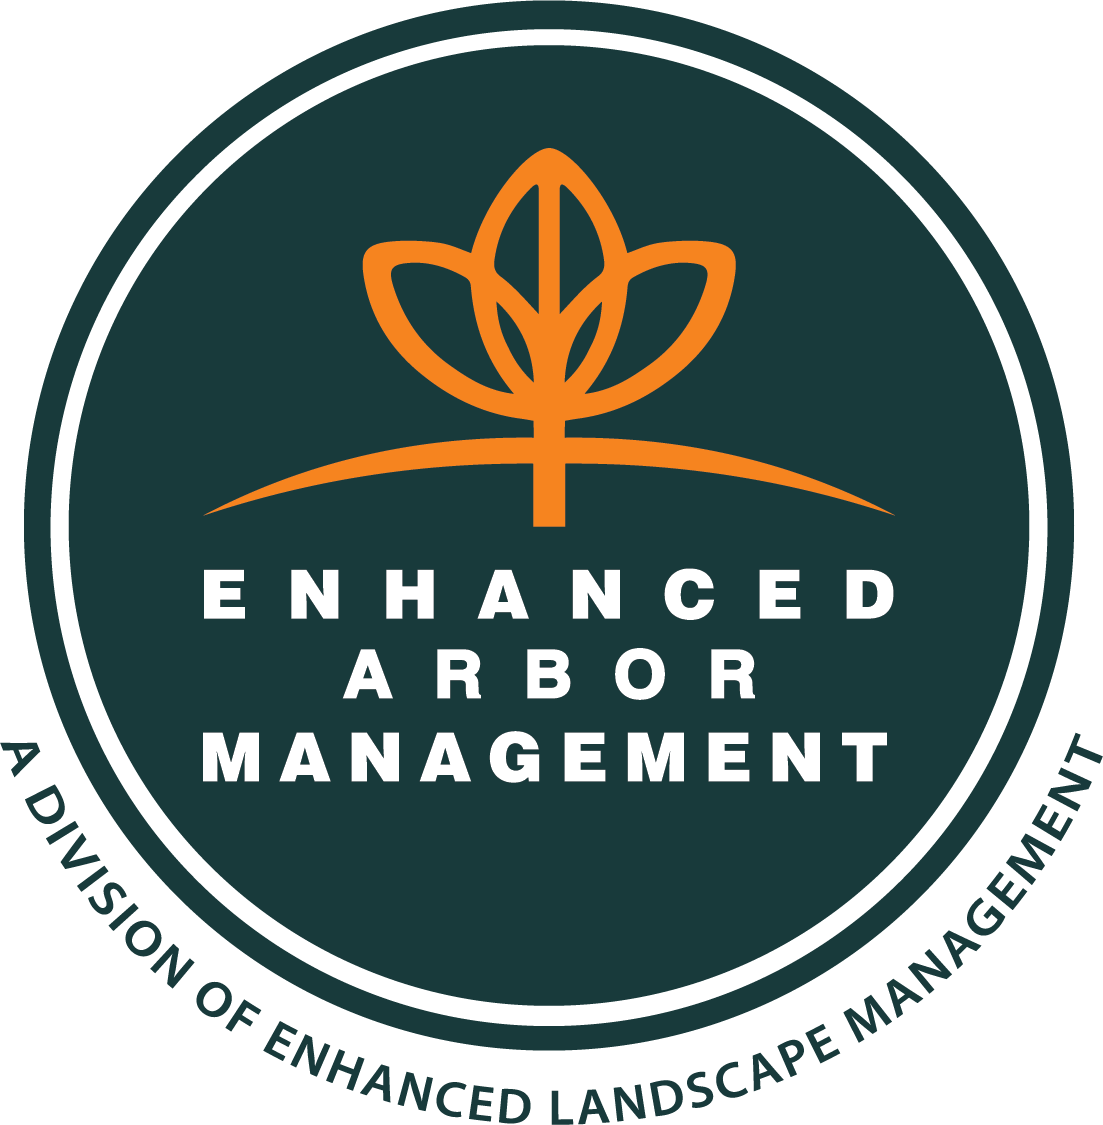 Enhanced_Arbor_Management_Logo_circle